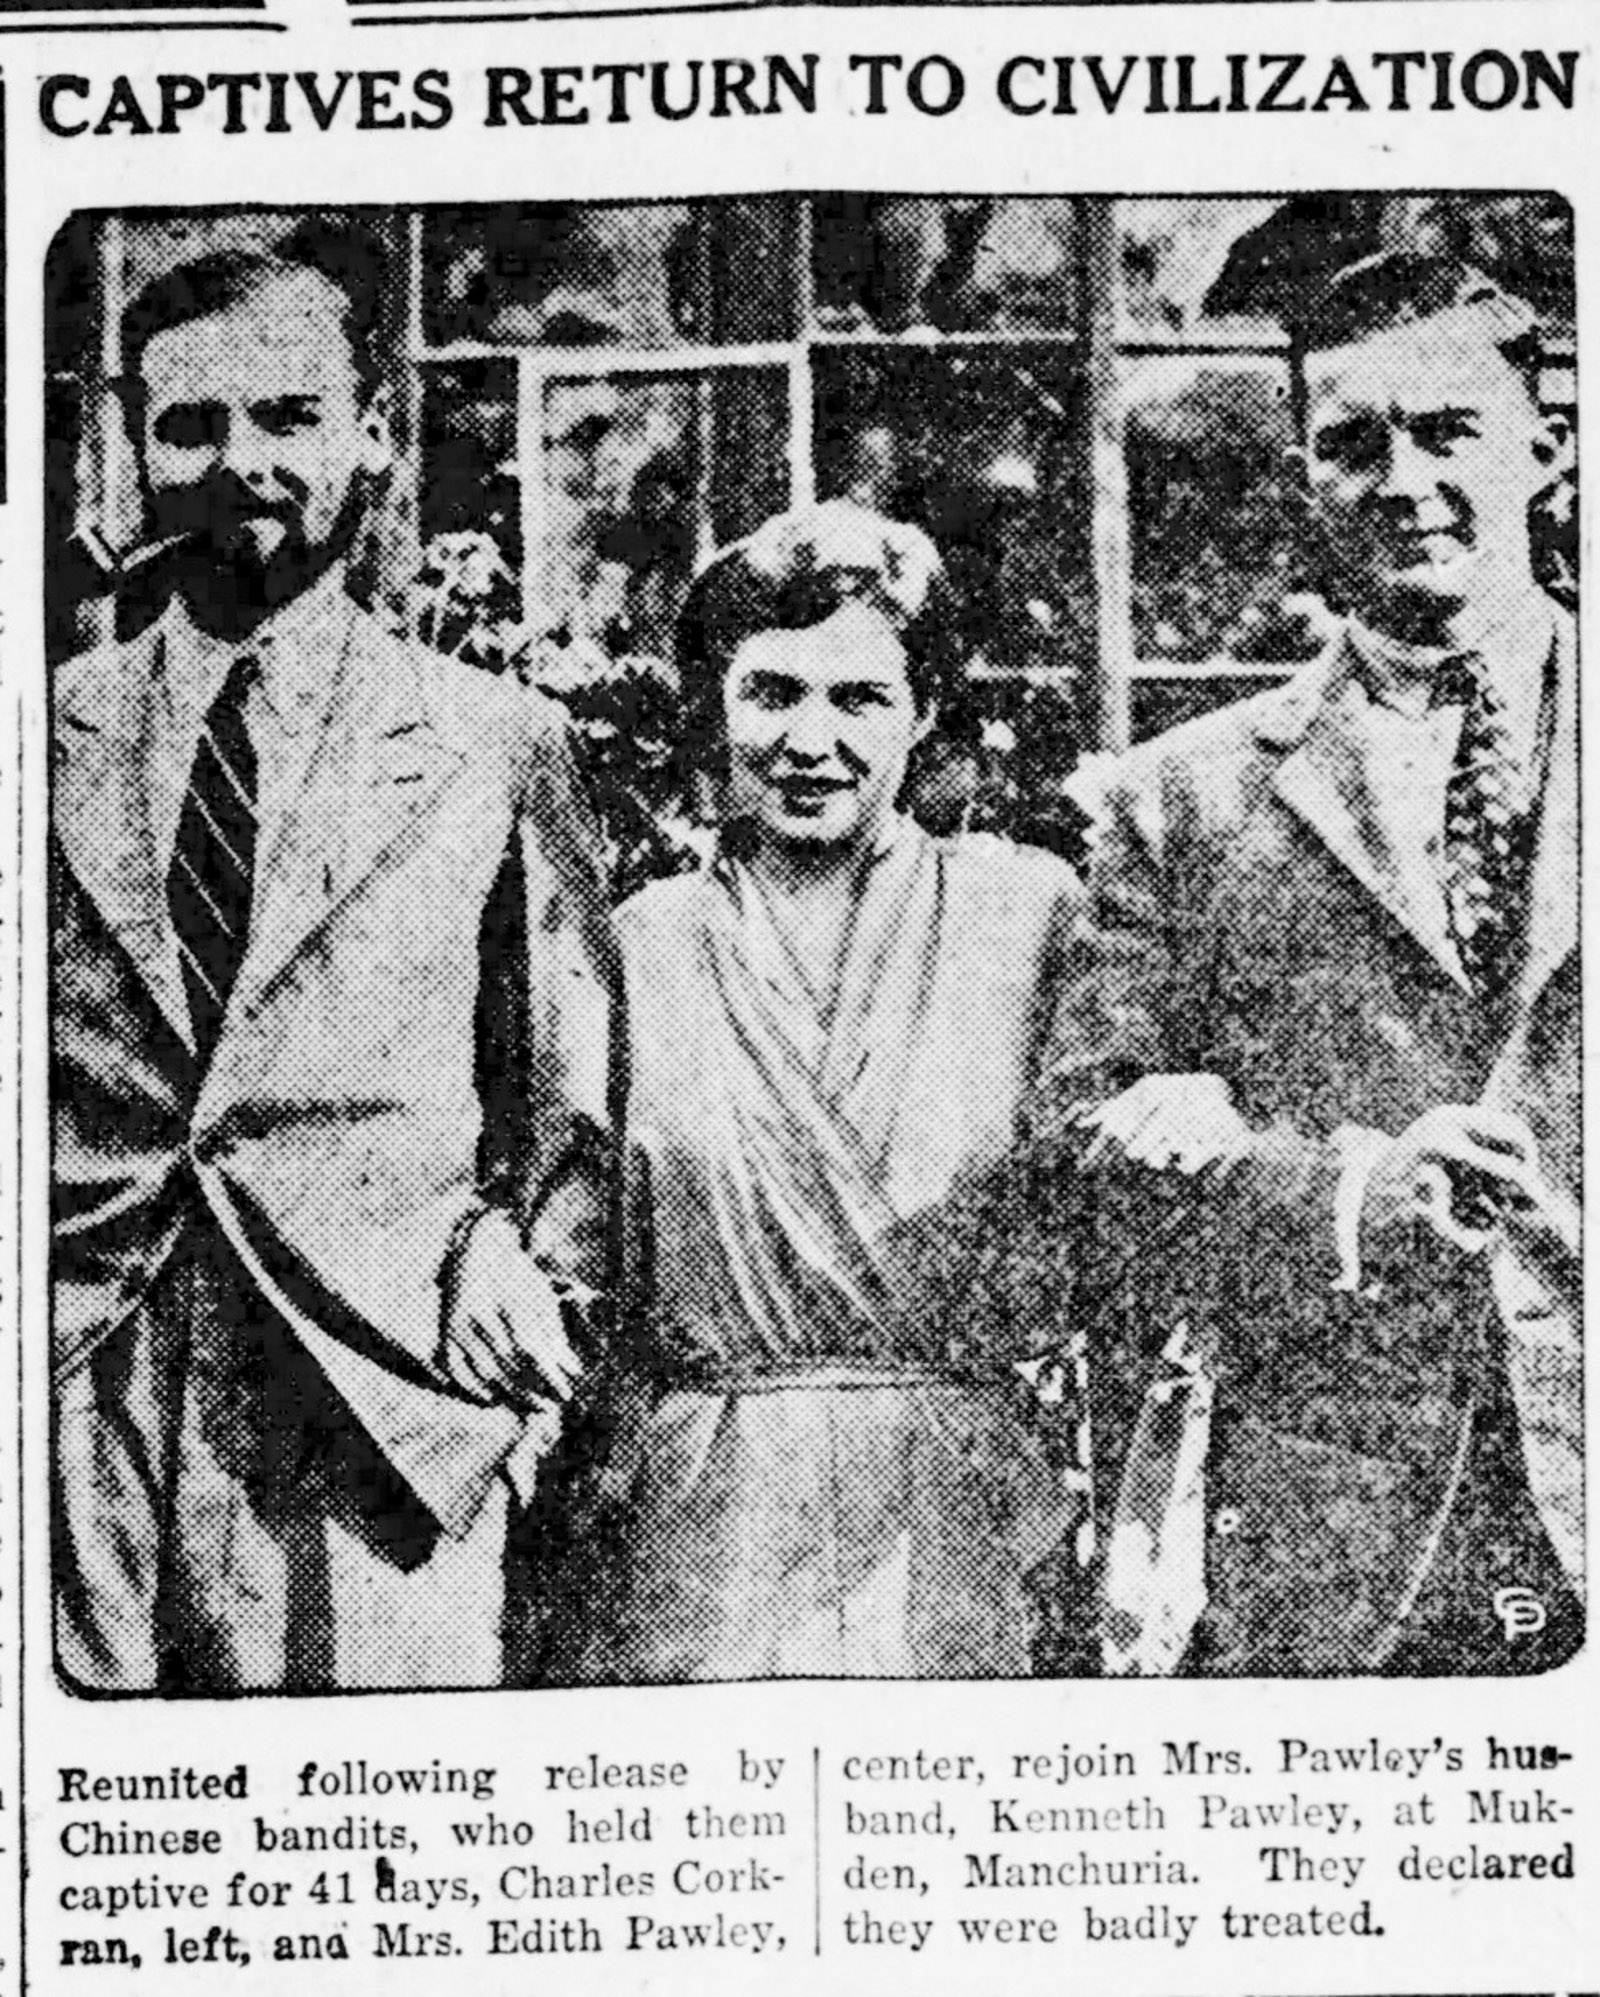 Newspaper clipping of Muriel 'Tinko' Pawley after her release, Manchuria, 1932